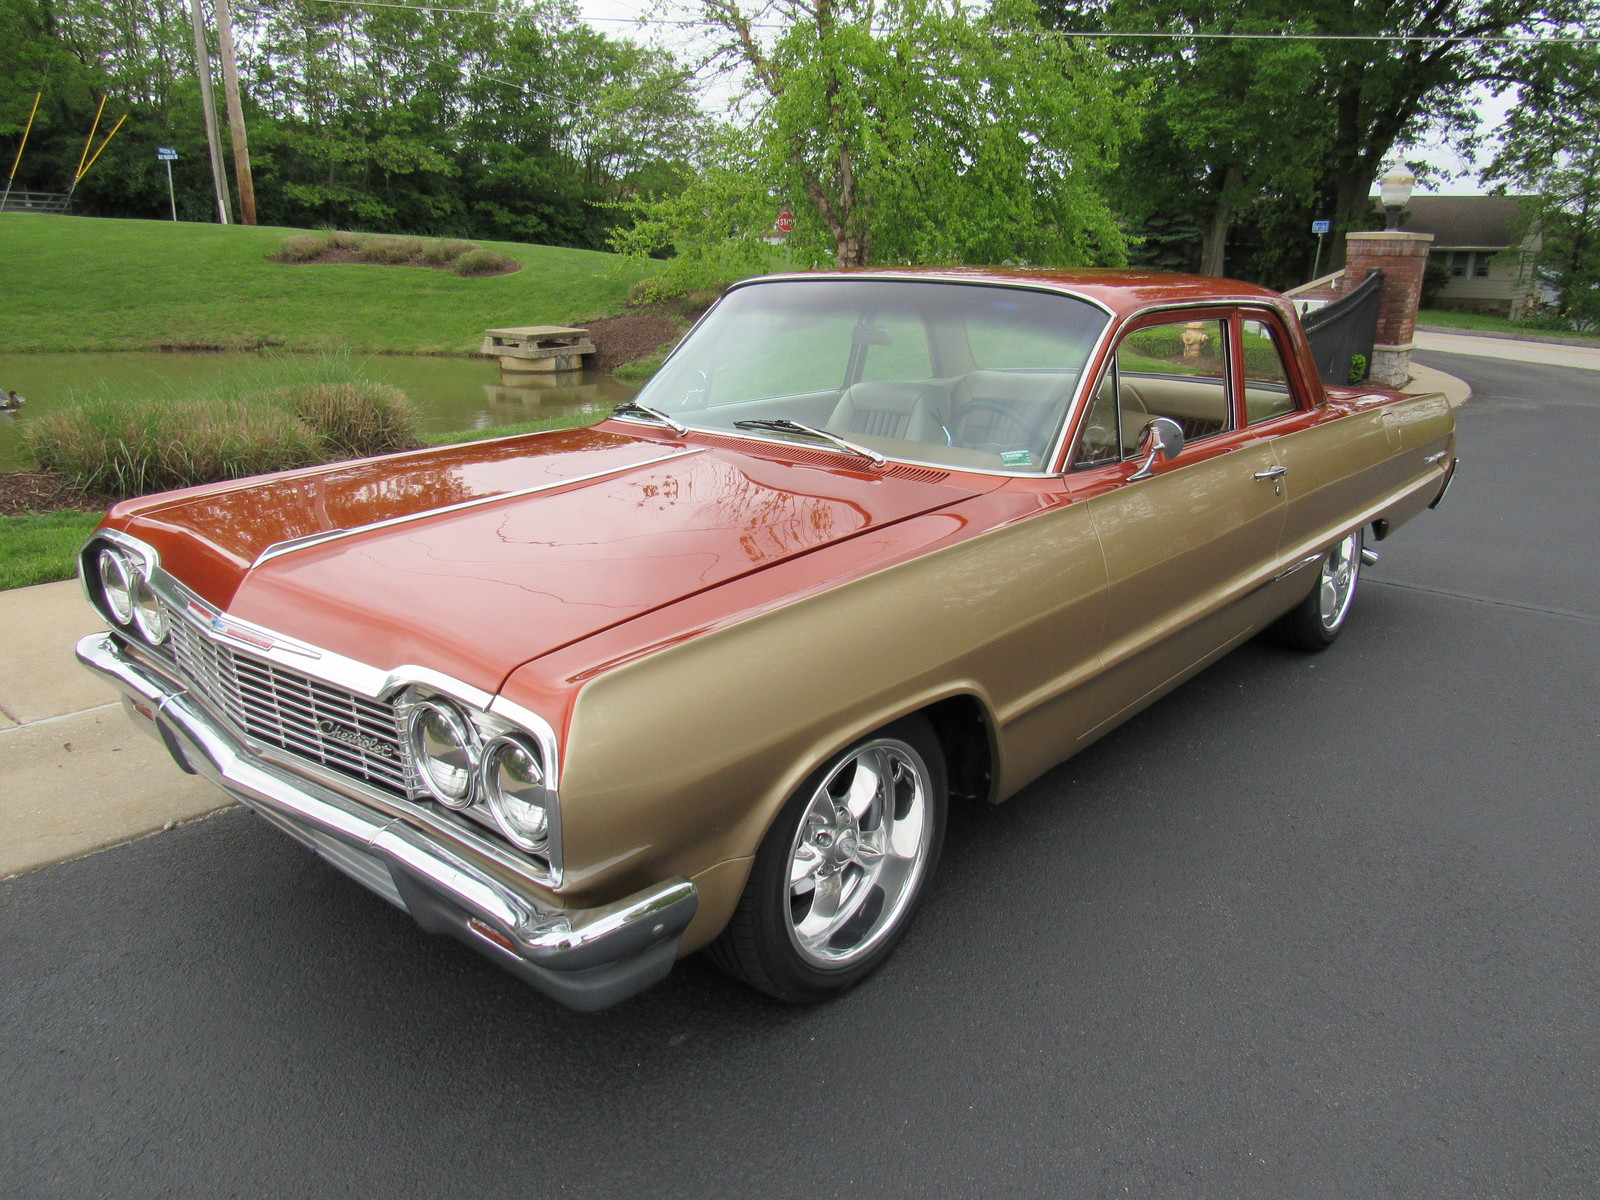 1964 chevy biscayne pro touring cold a c power disc brakes boyd coddingtons nice